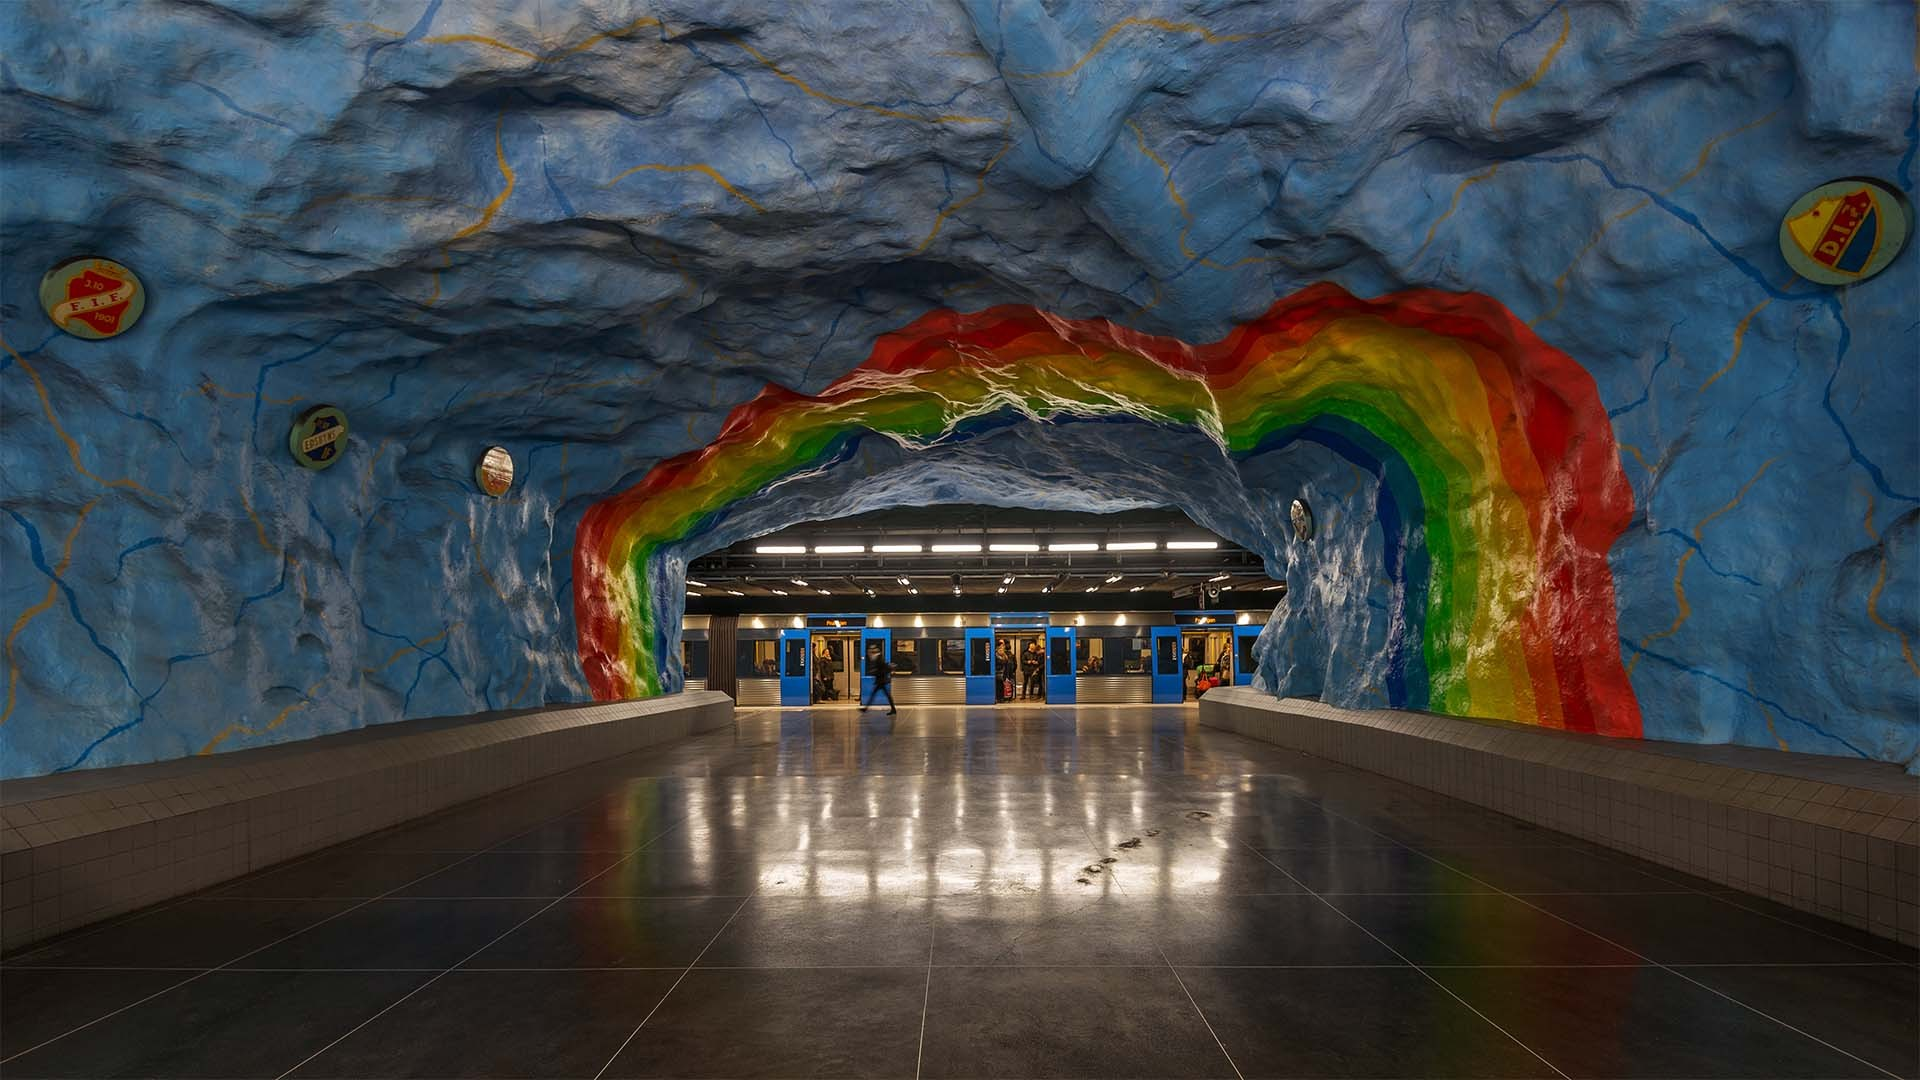 Rainbow painting at Stadion station, Stockholm metro